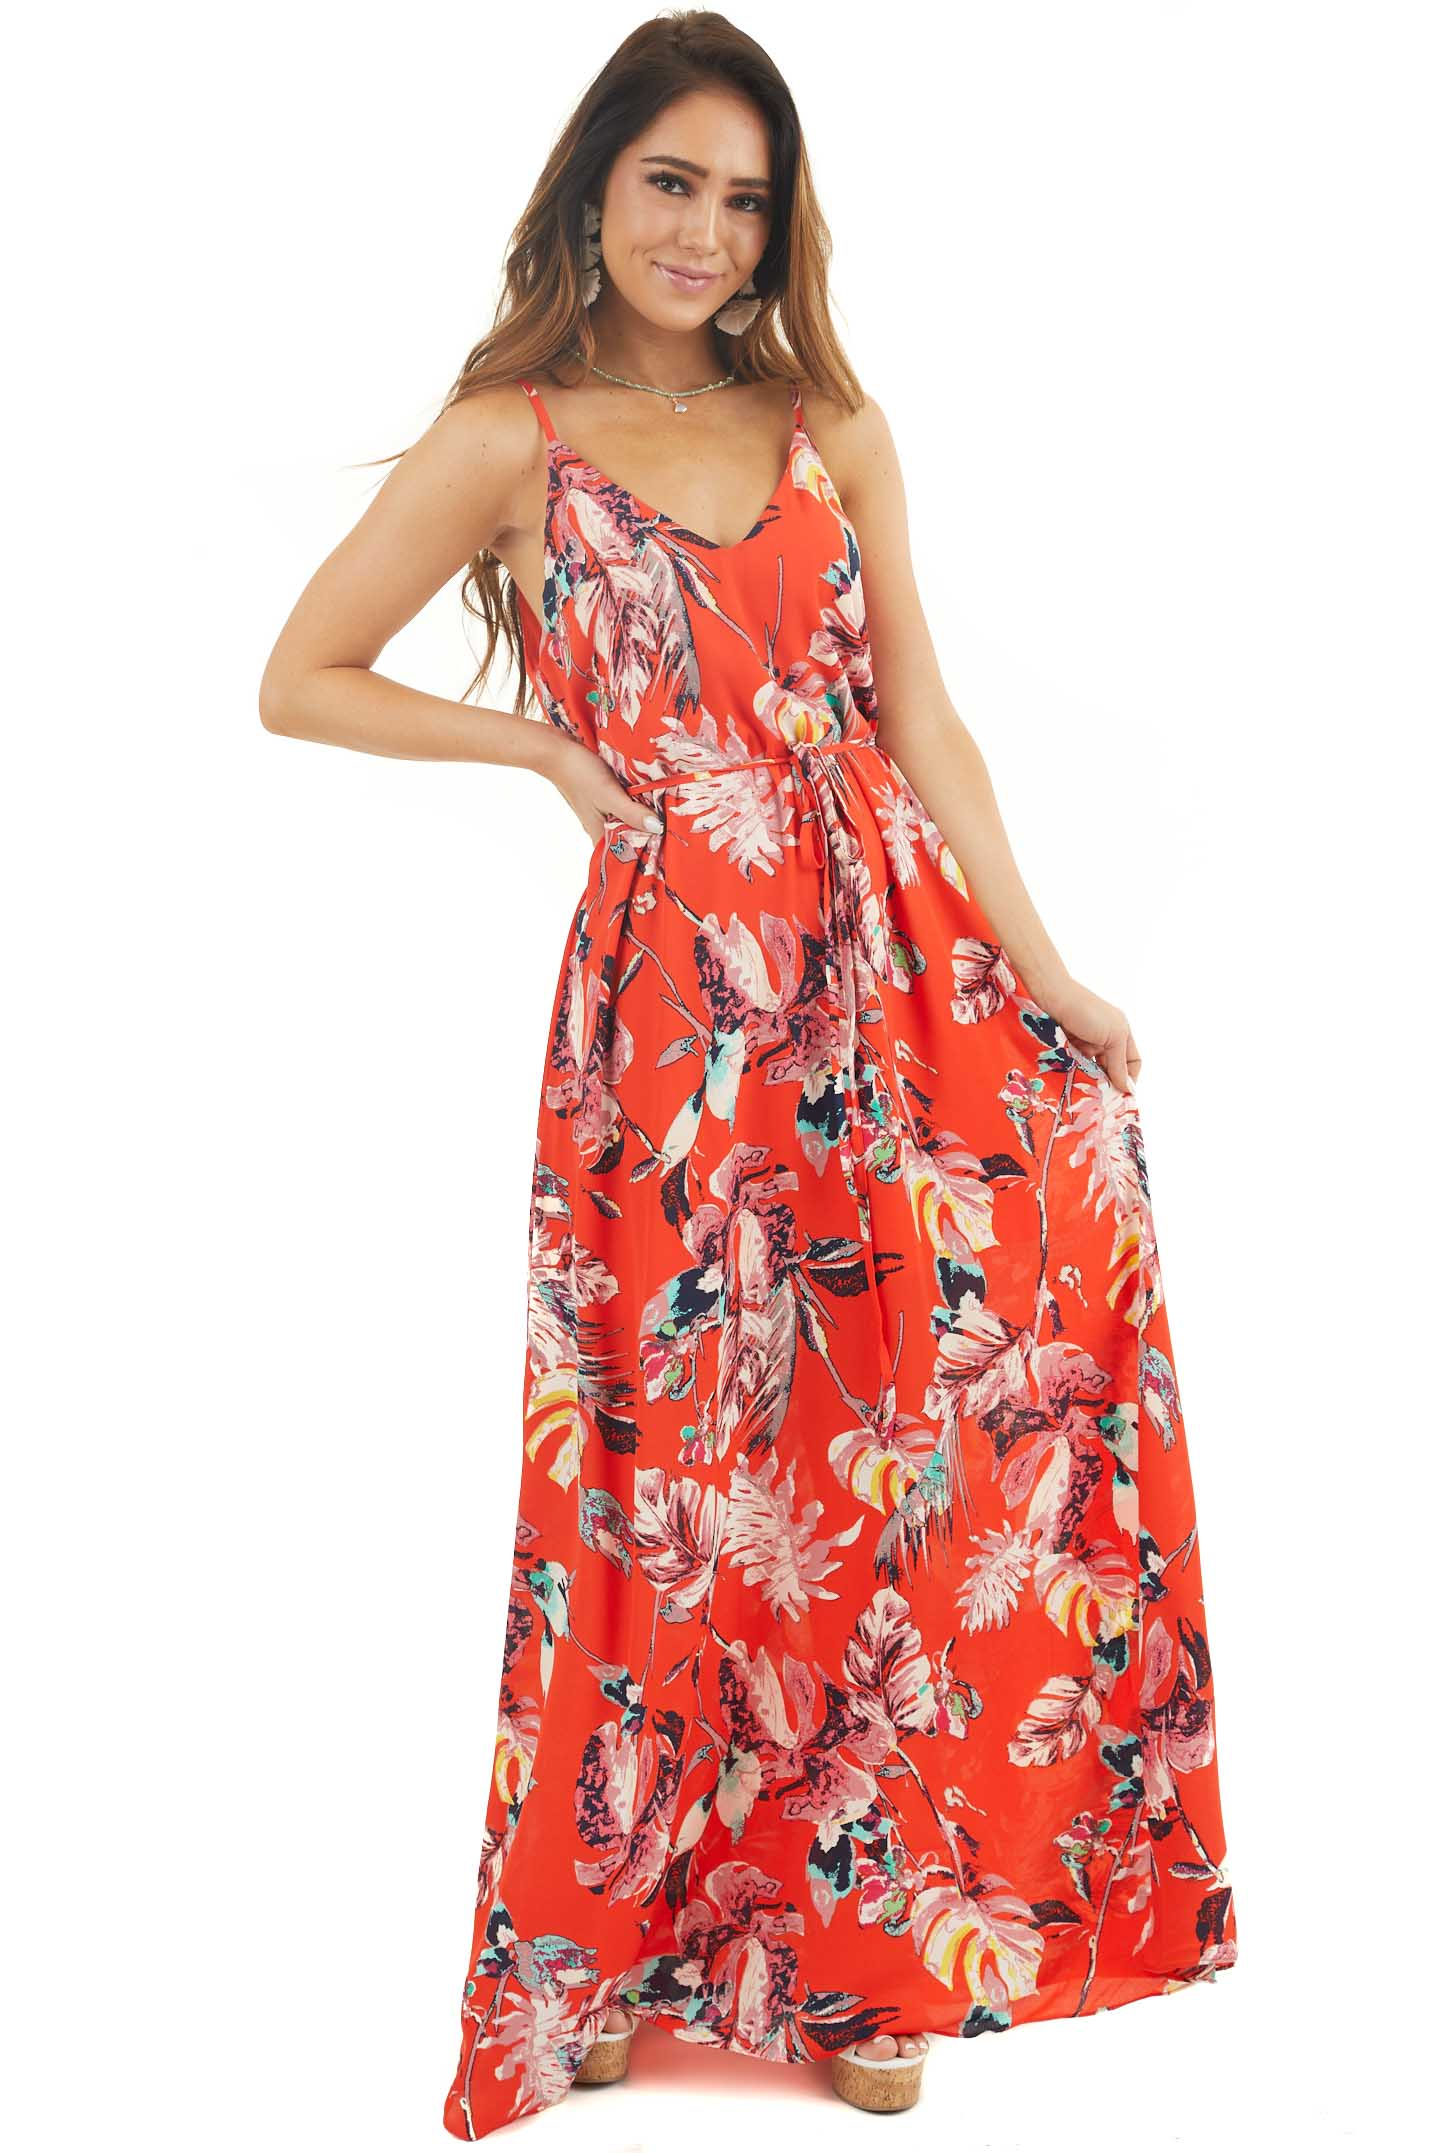 Tomato Red Tropical Print Maxi Dress with Spaghetti Straps